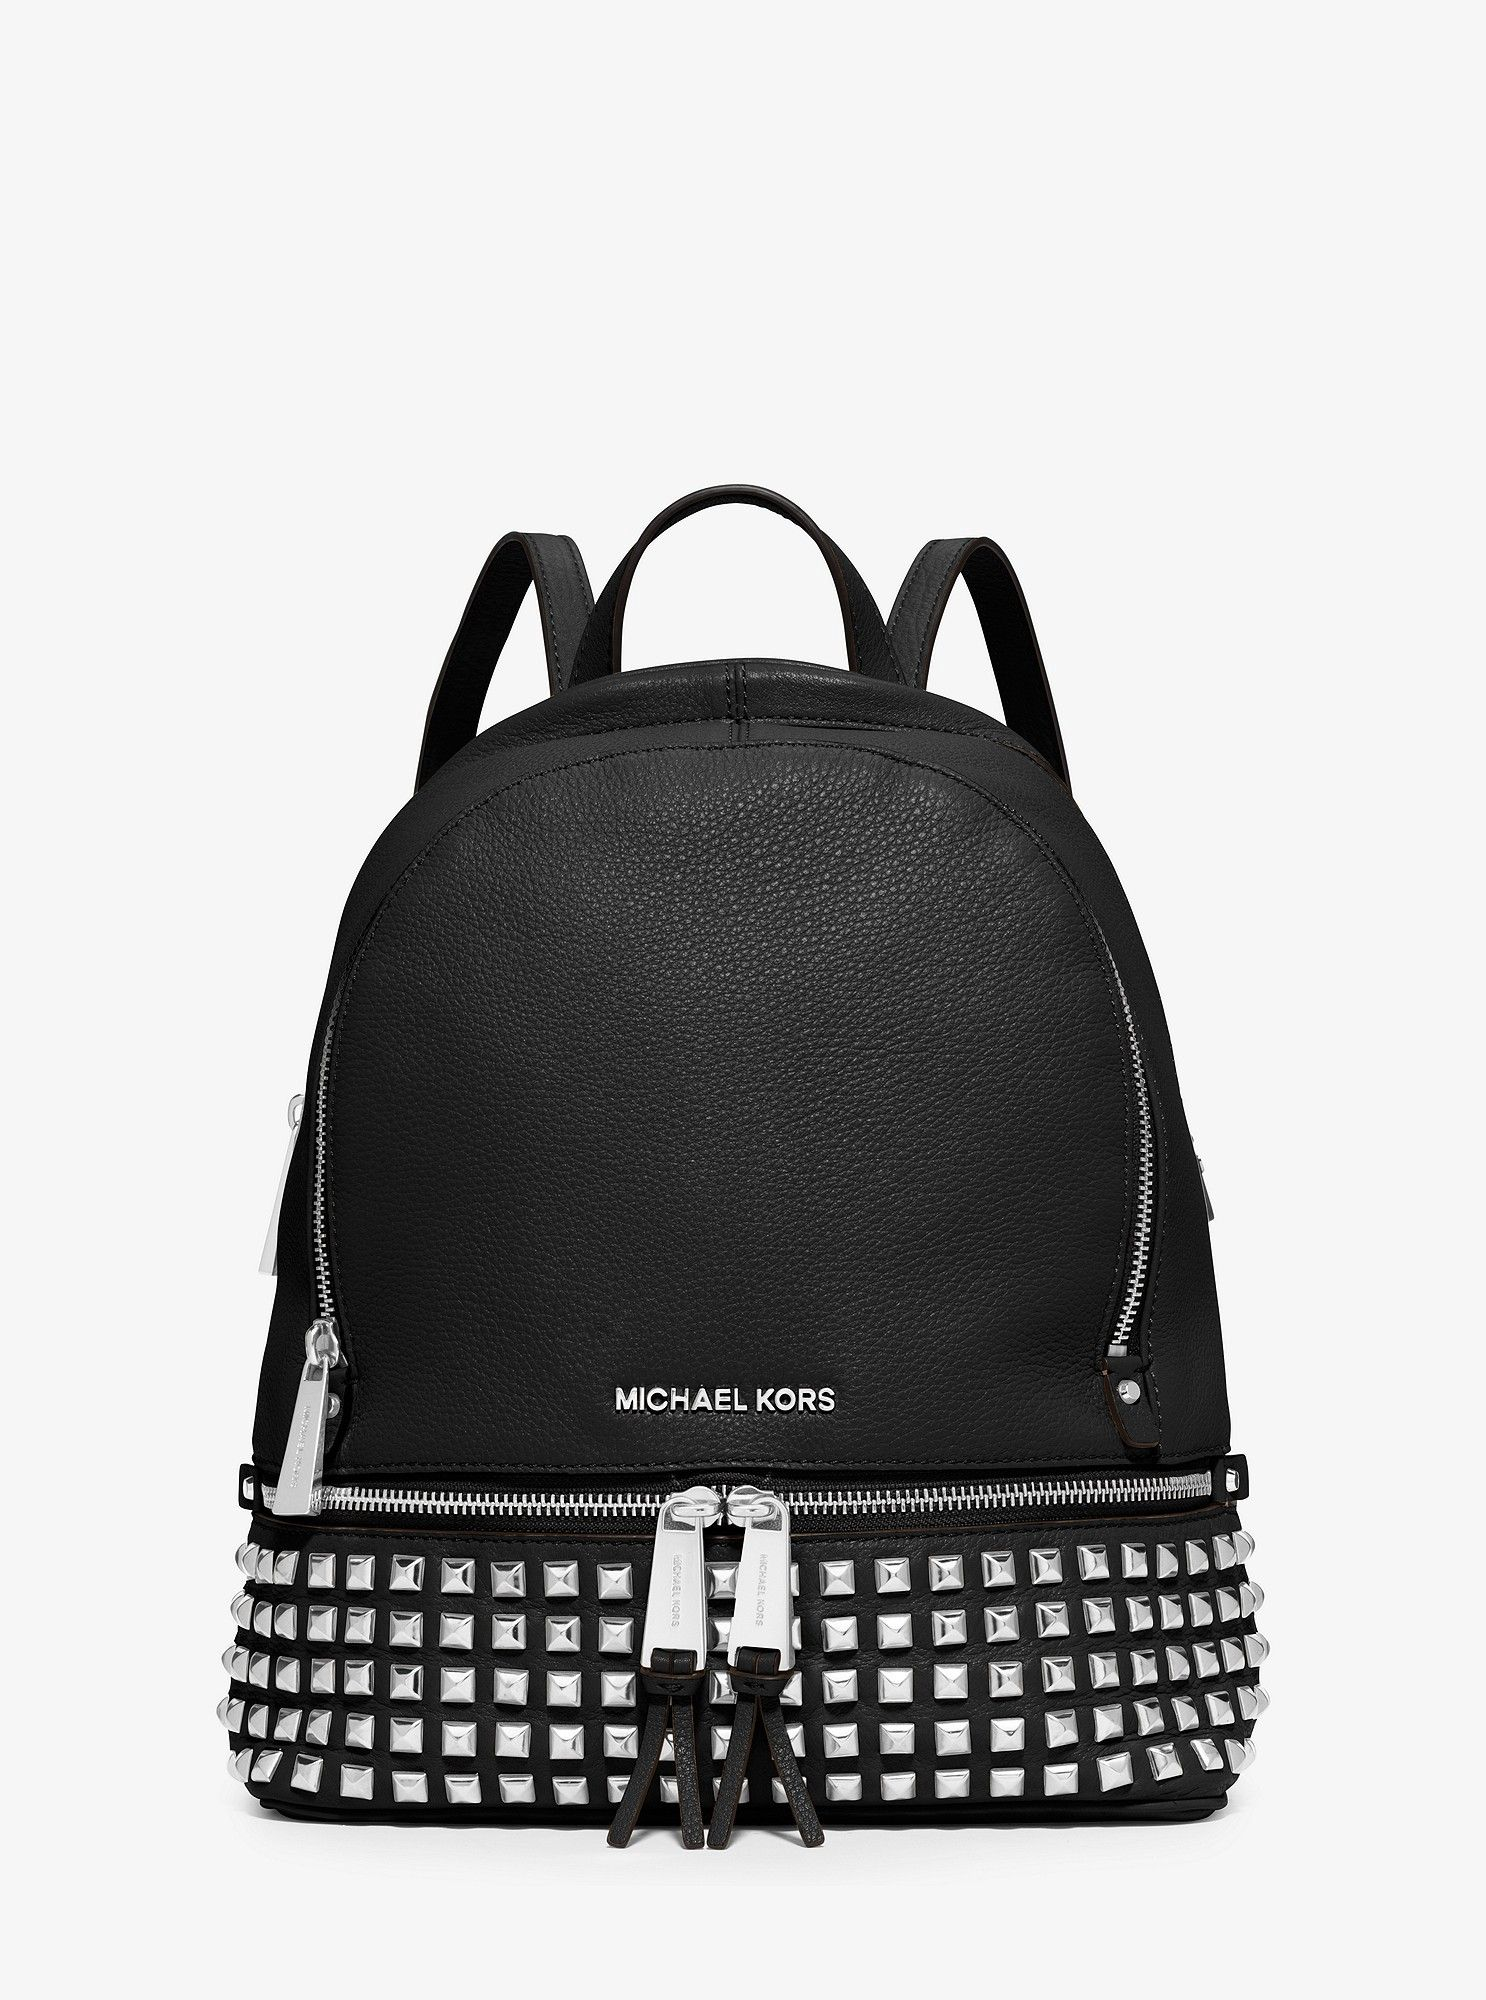 5ca5985a5ec6 Michael Kors Rhea Small Studded Leather Backpack - Black in 2019 ...